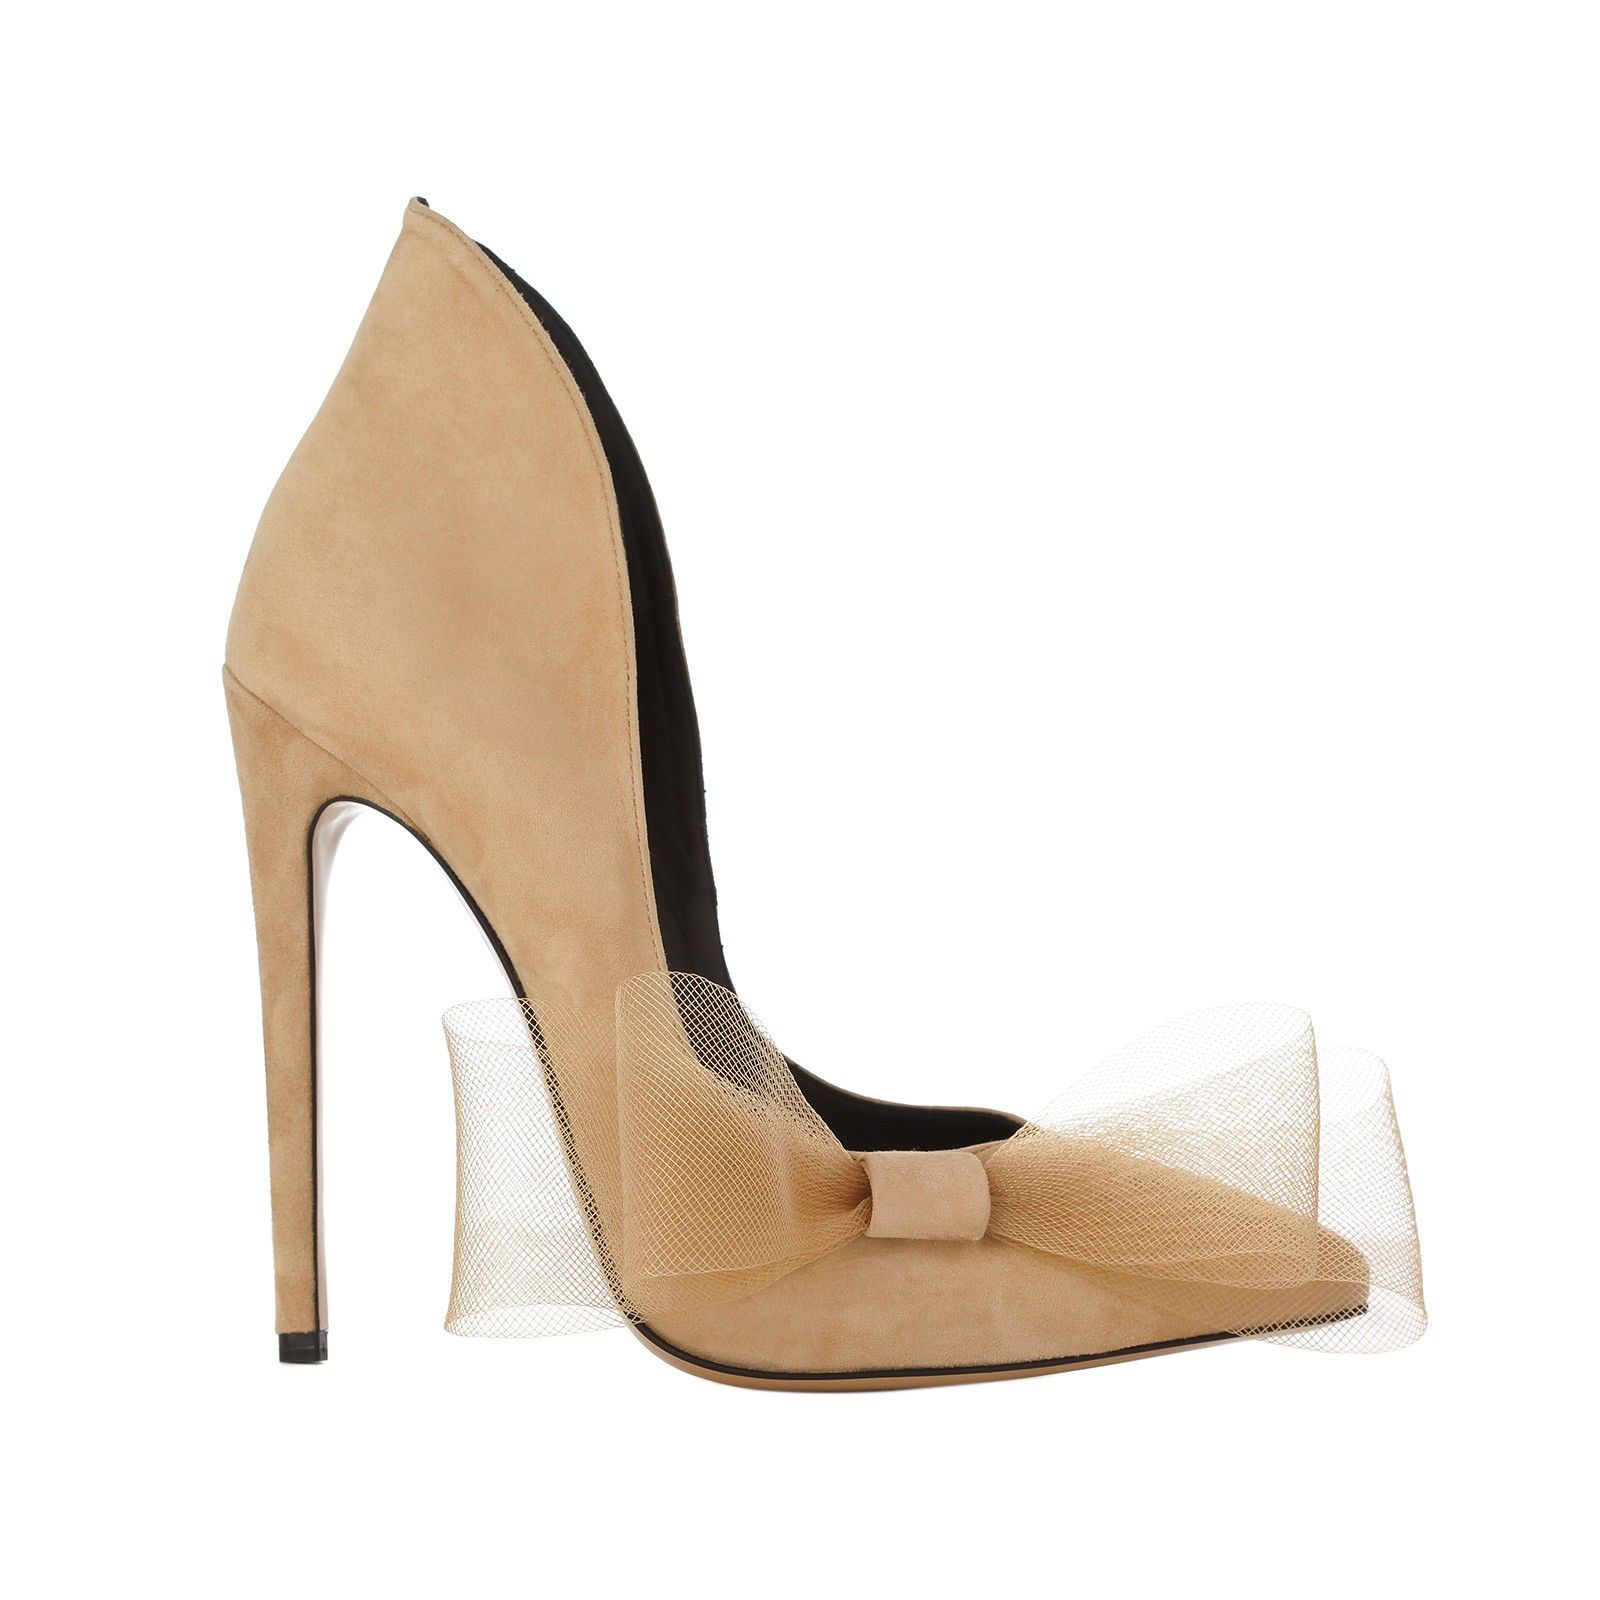 Beige suede pointy toe pumps with side bow heel height 11 5 cm